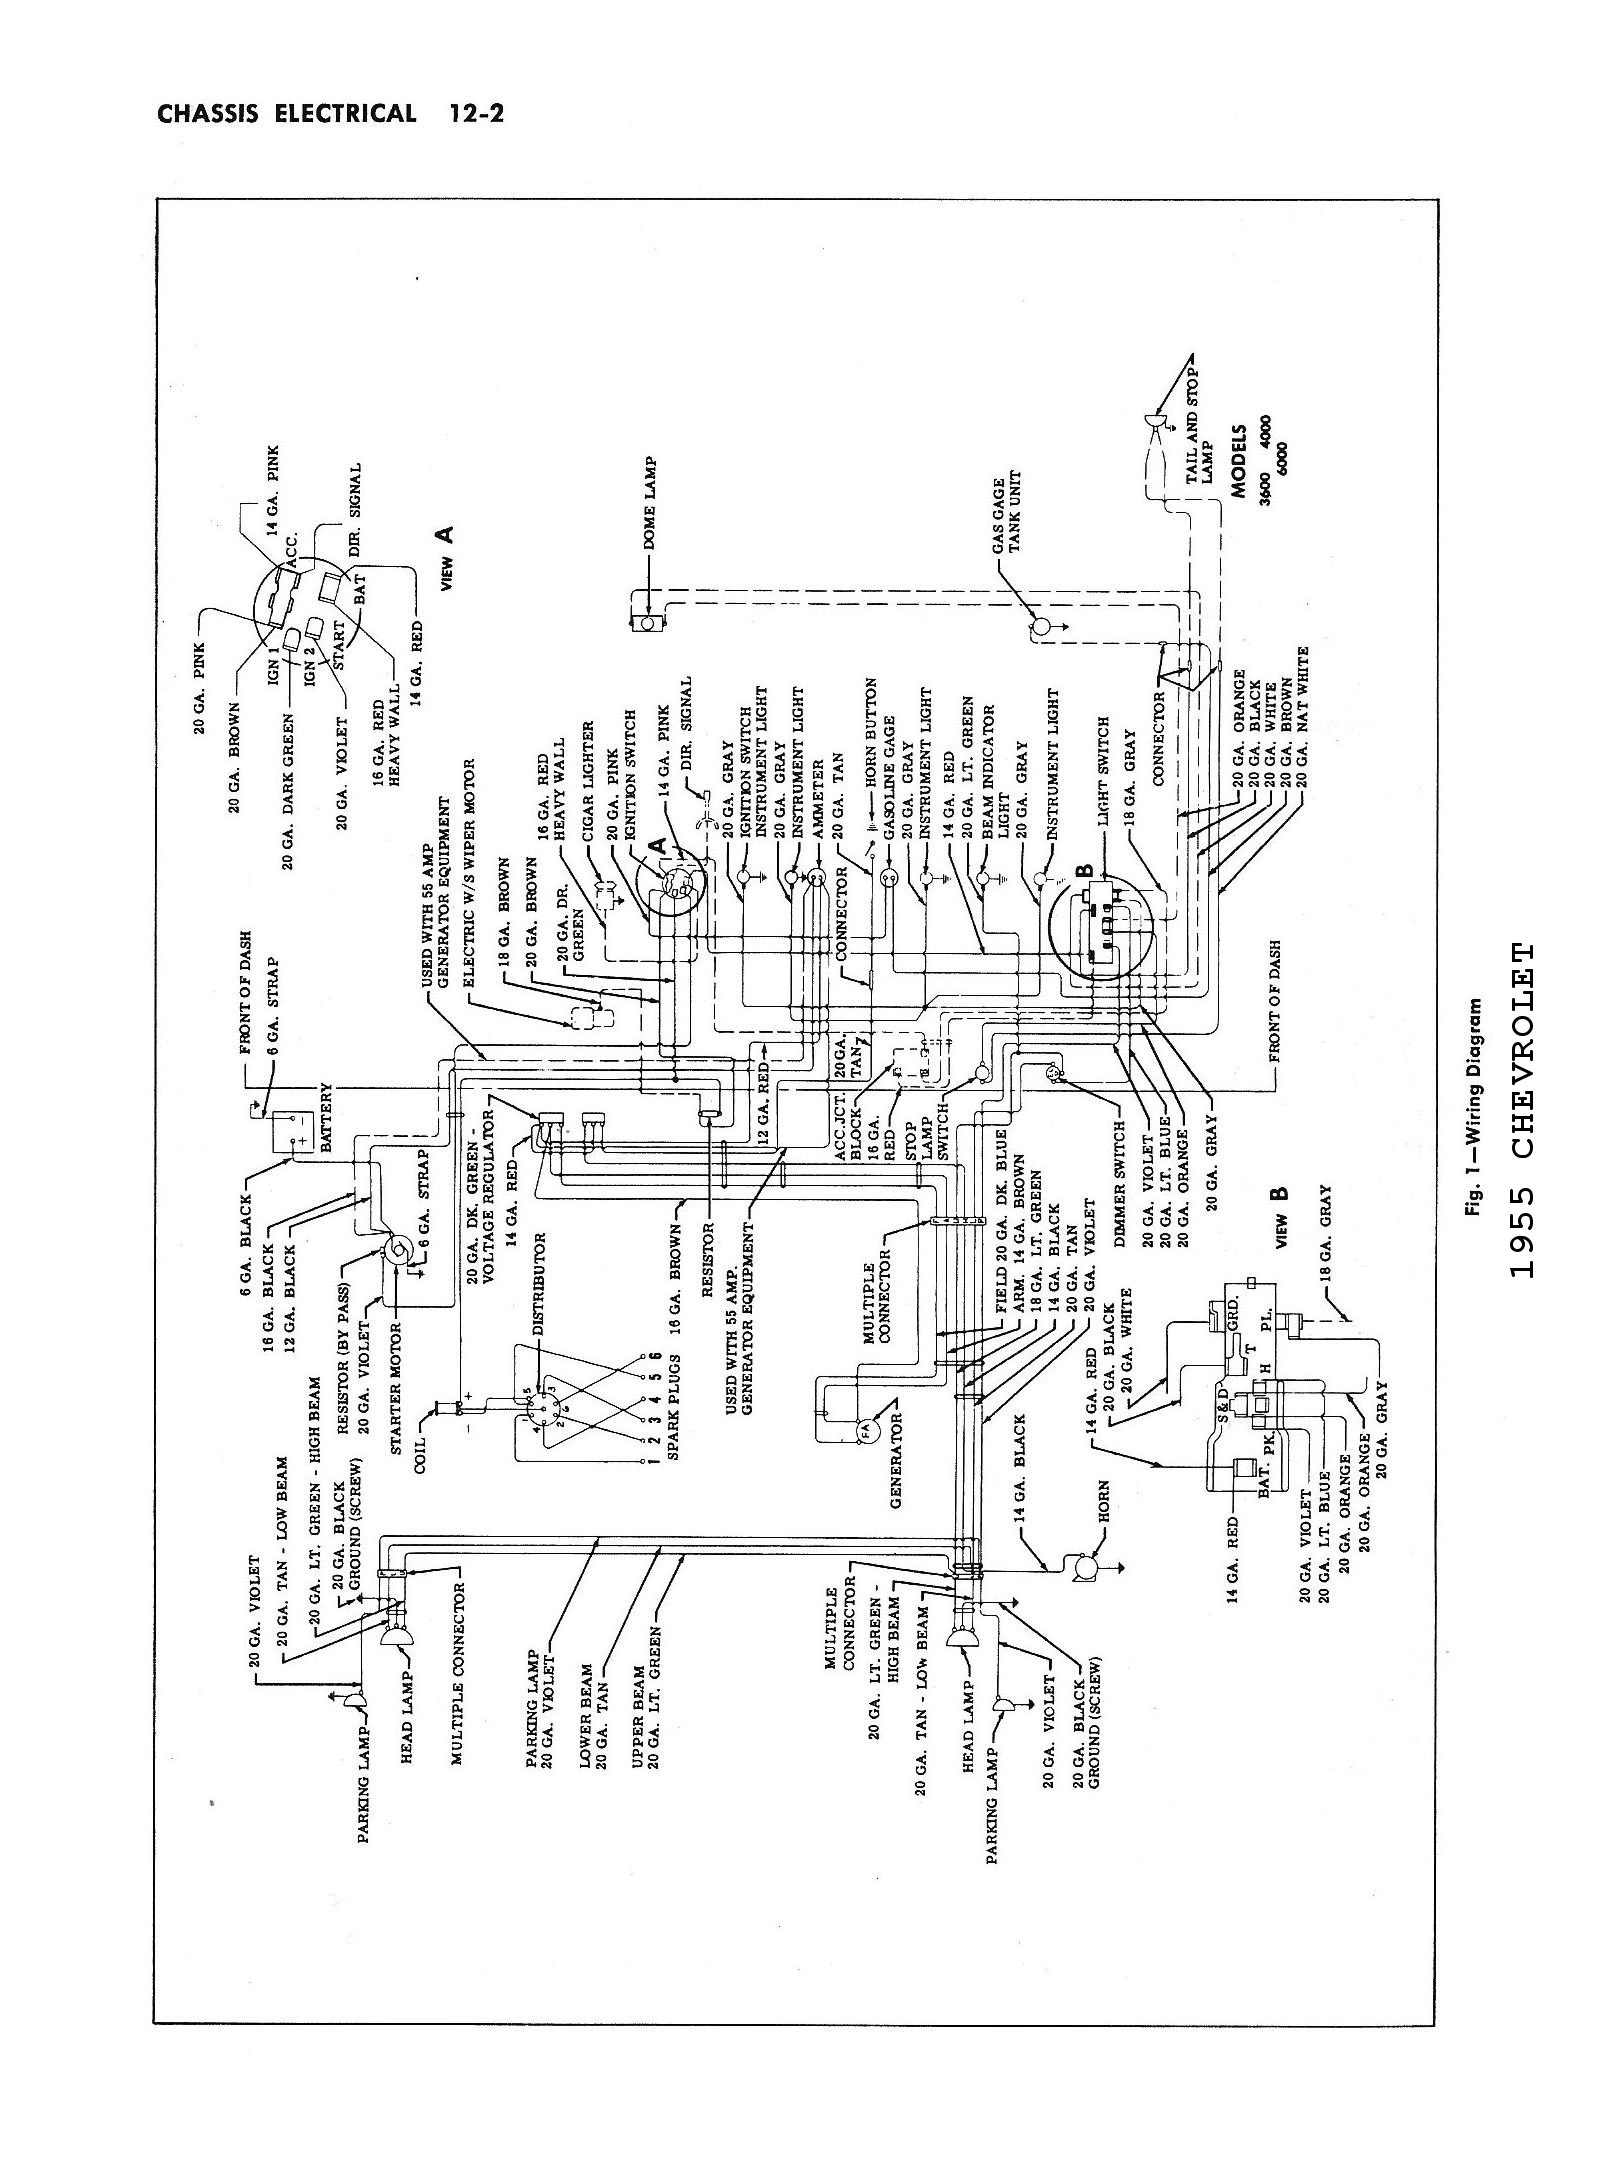 1947 Chevy Truck Wiring Diagram Opinions About Wiring Diagram \u2022 1966 Chevy  Wiring Diagram 1947 Chevy Wiring Diagram